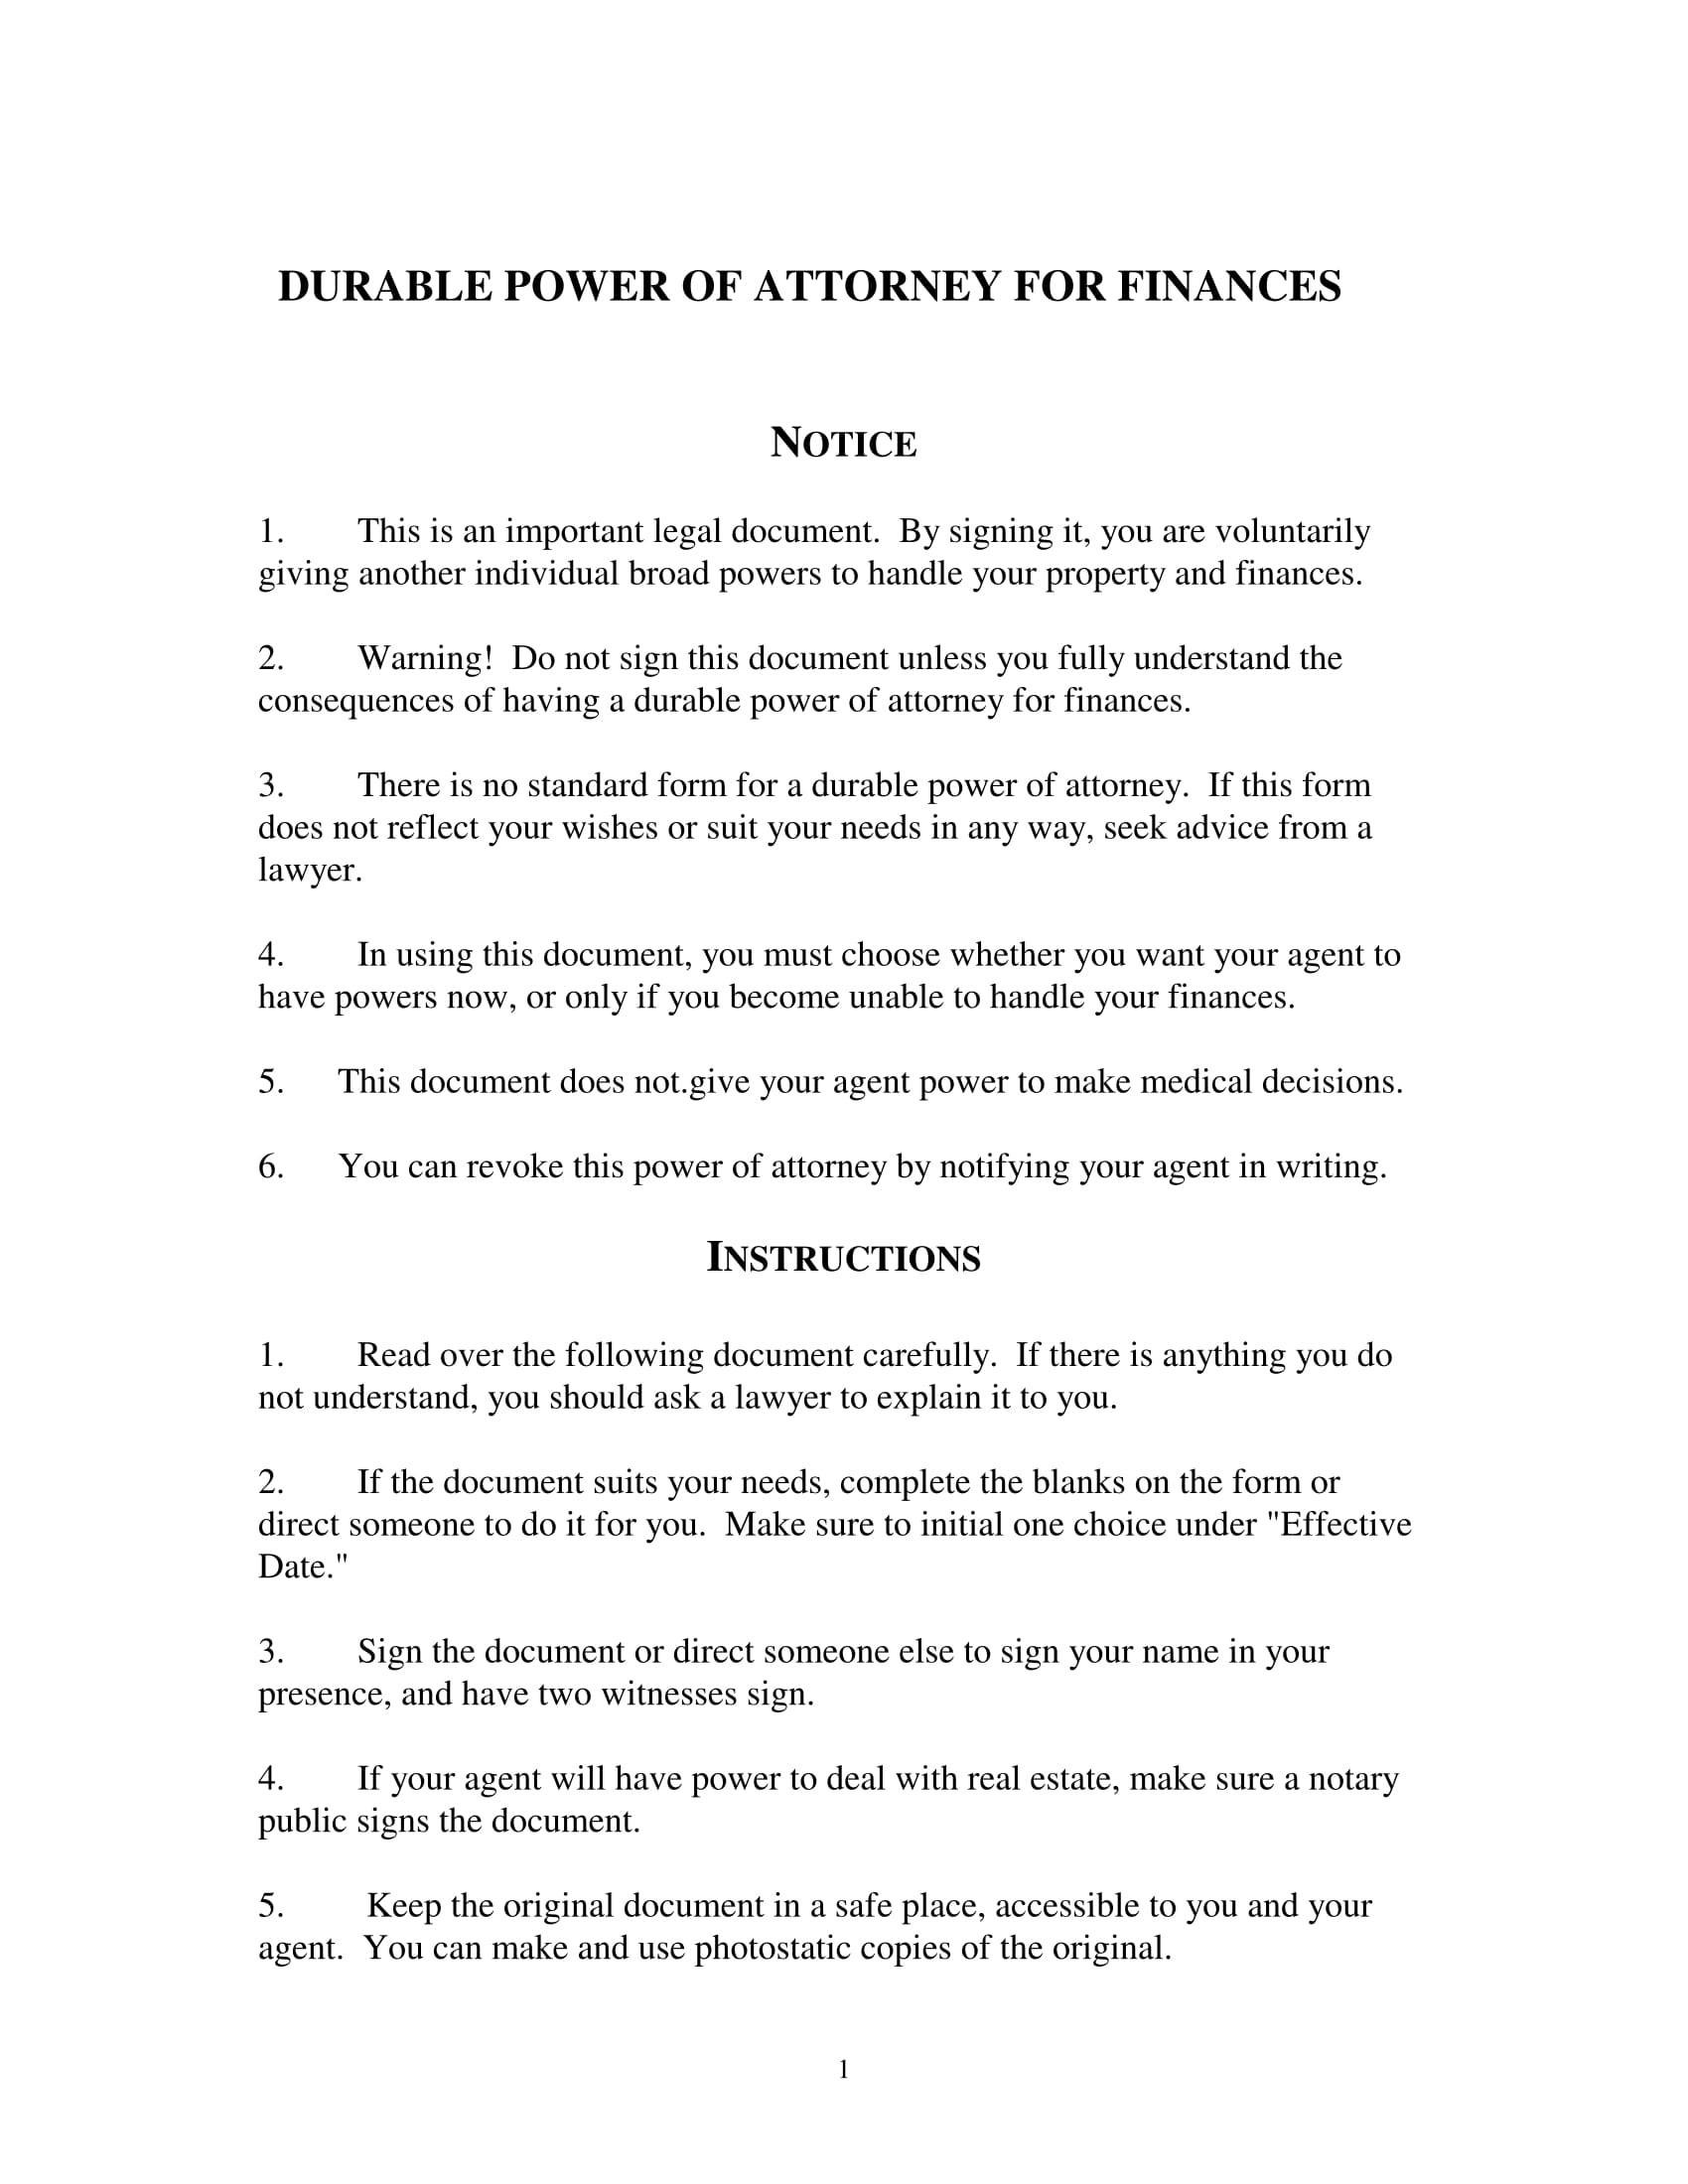 durable financial power of attorney form 1